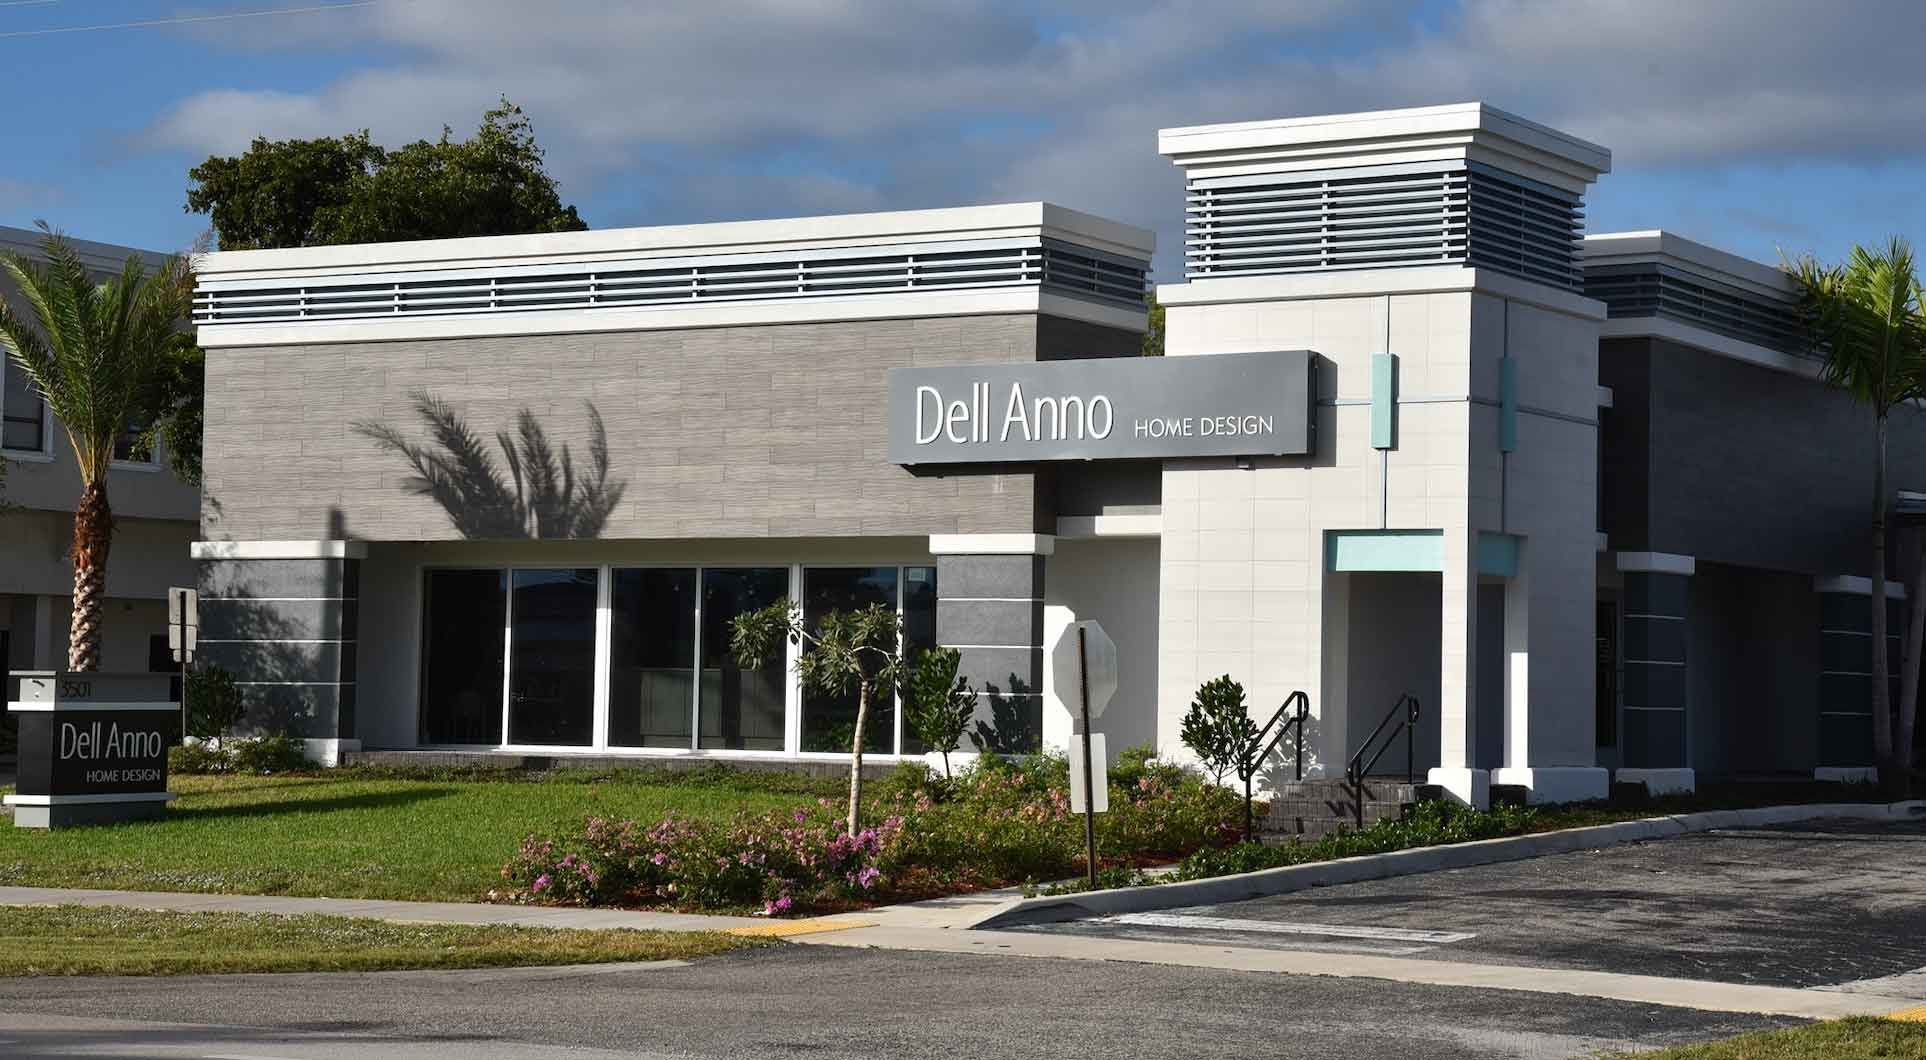 Dell Anno Is All About Contemporary Luxury Cabinetry, Timeless Design And Fine Craftsmanship.